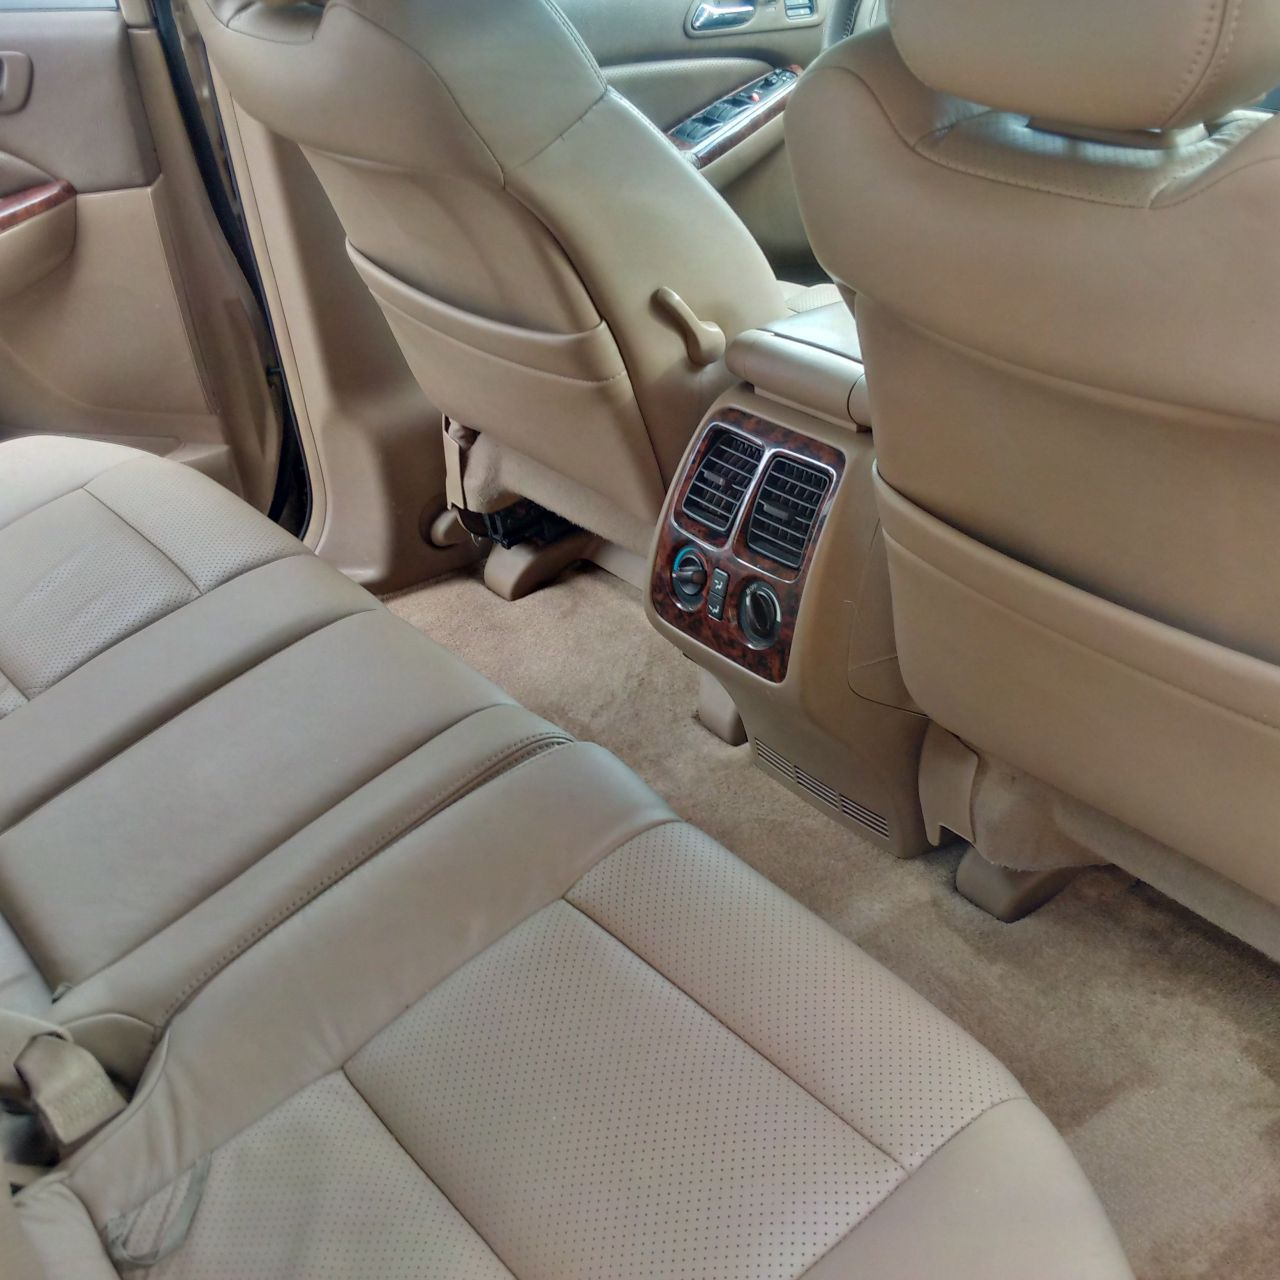 2005 Acura Mdx For Sale: Acura MDX @1.550m. For More Info Contact 08077605055